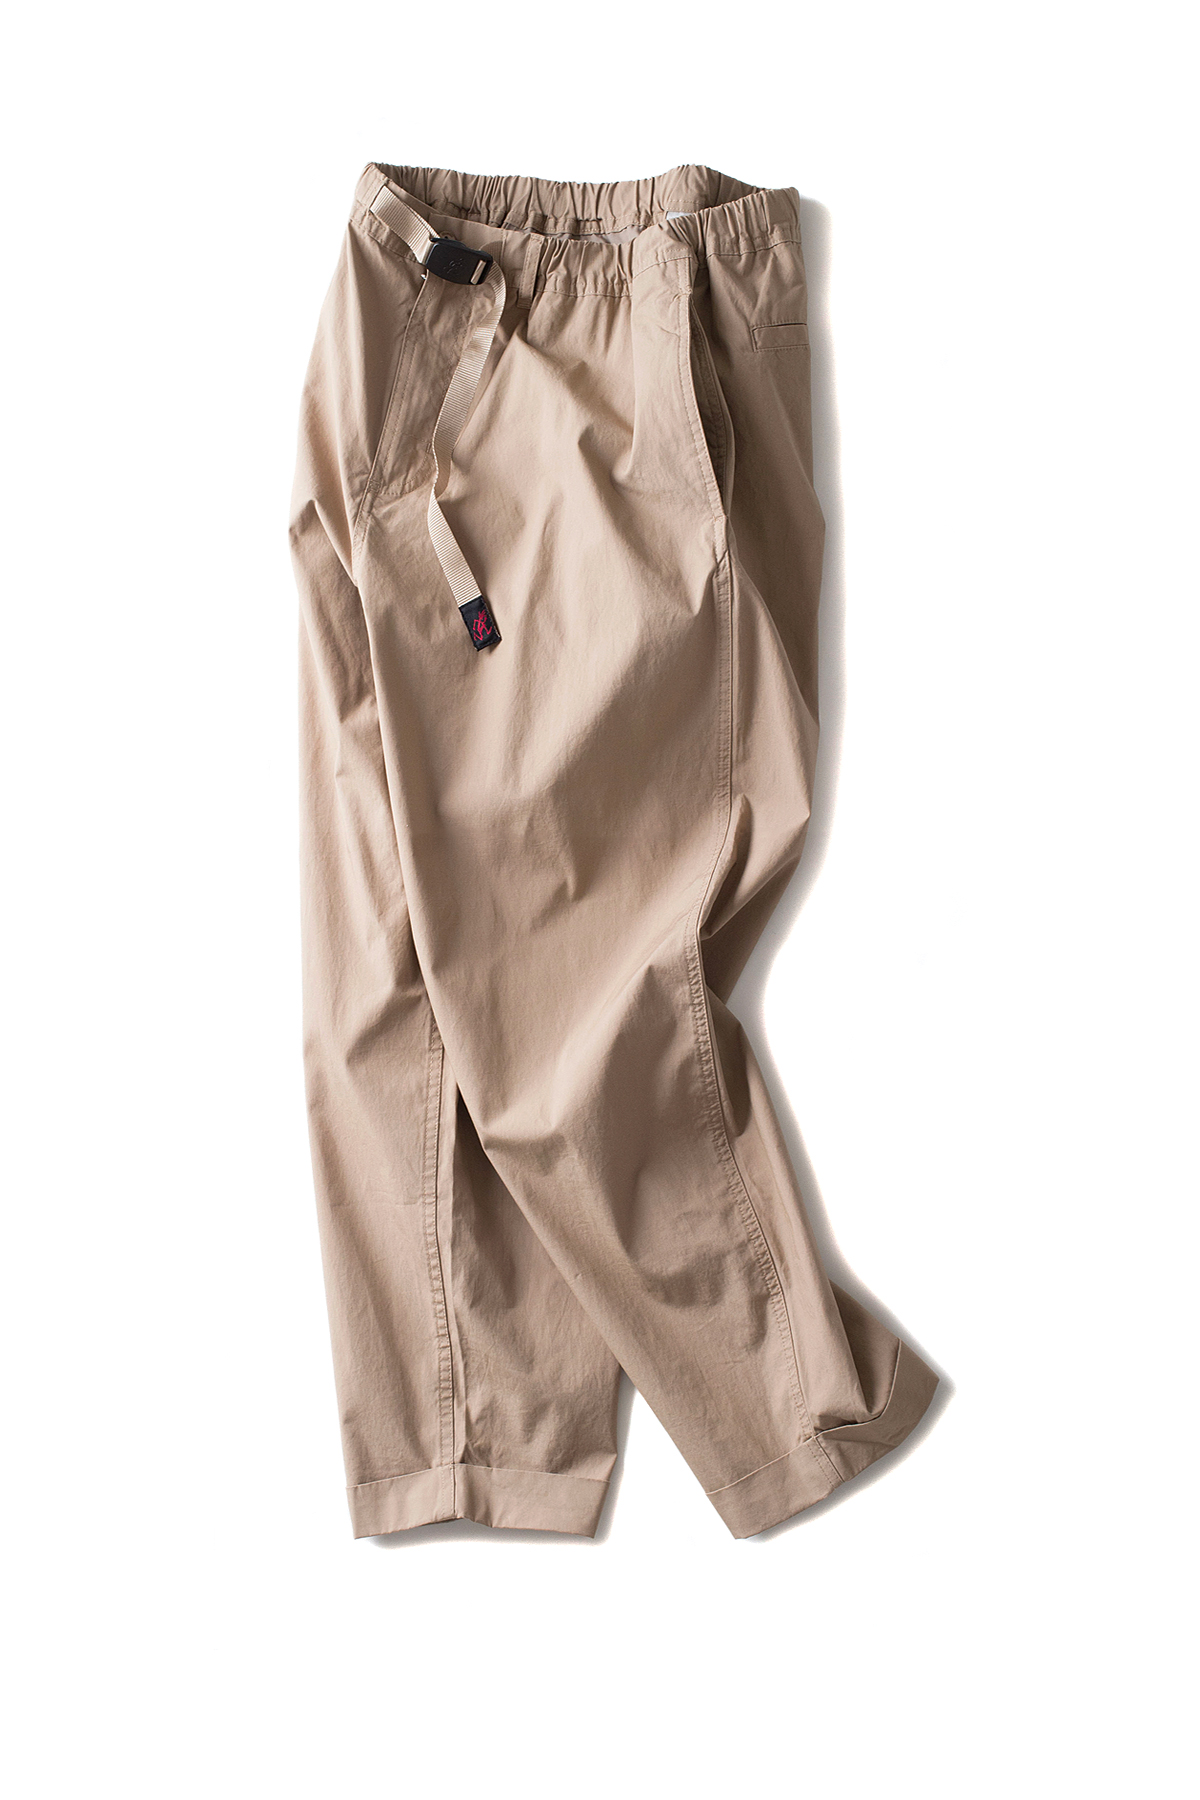 Gramicci : Weather Resort Pants (Sand)